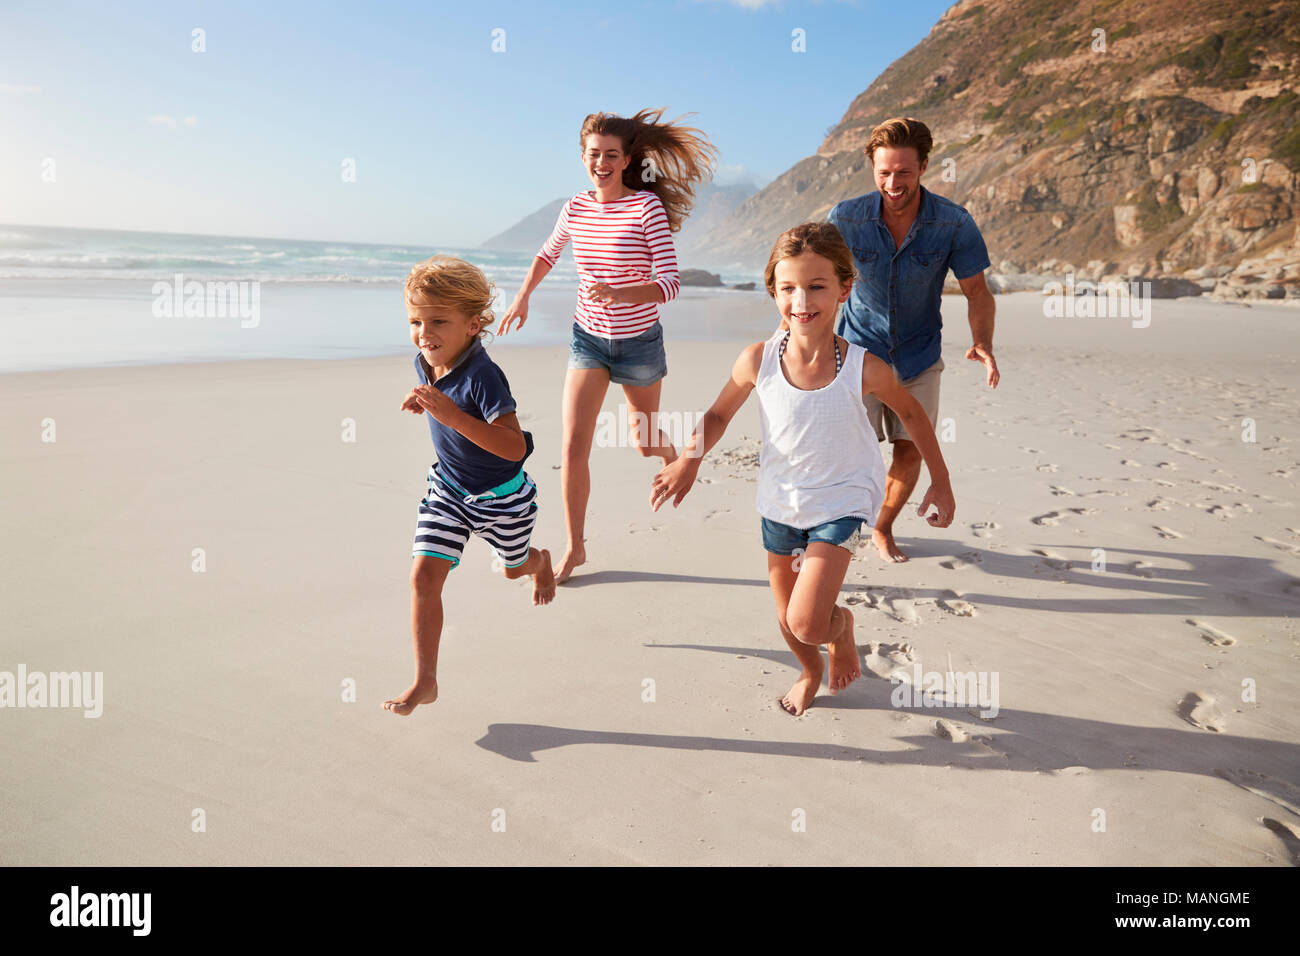 Les parents le long de plage avec les enfants en vacances Photo Stock